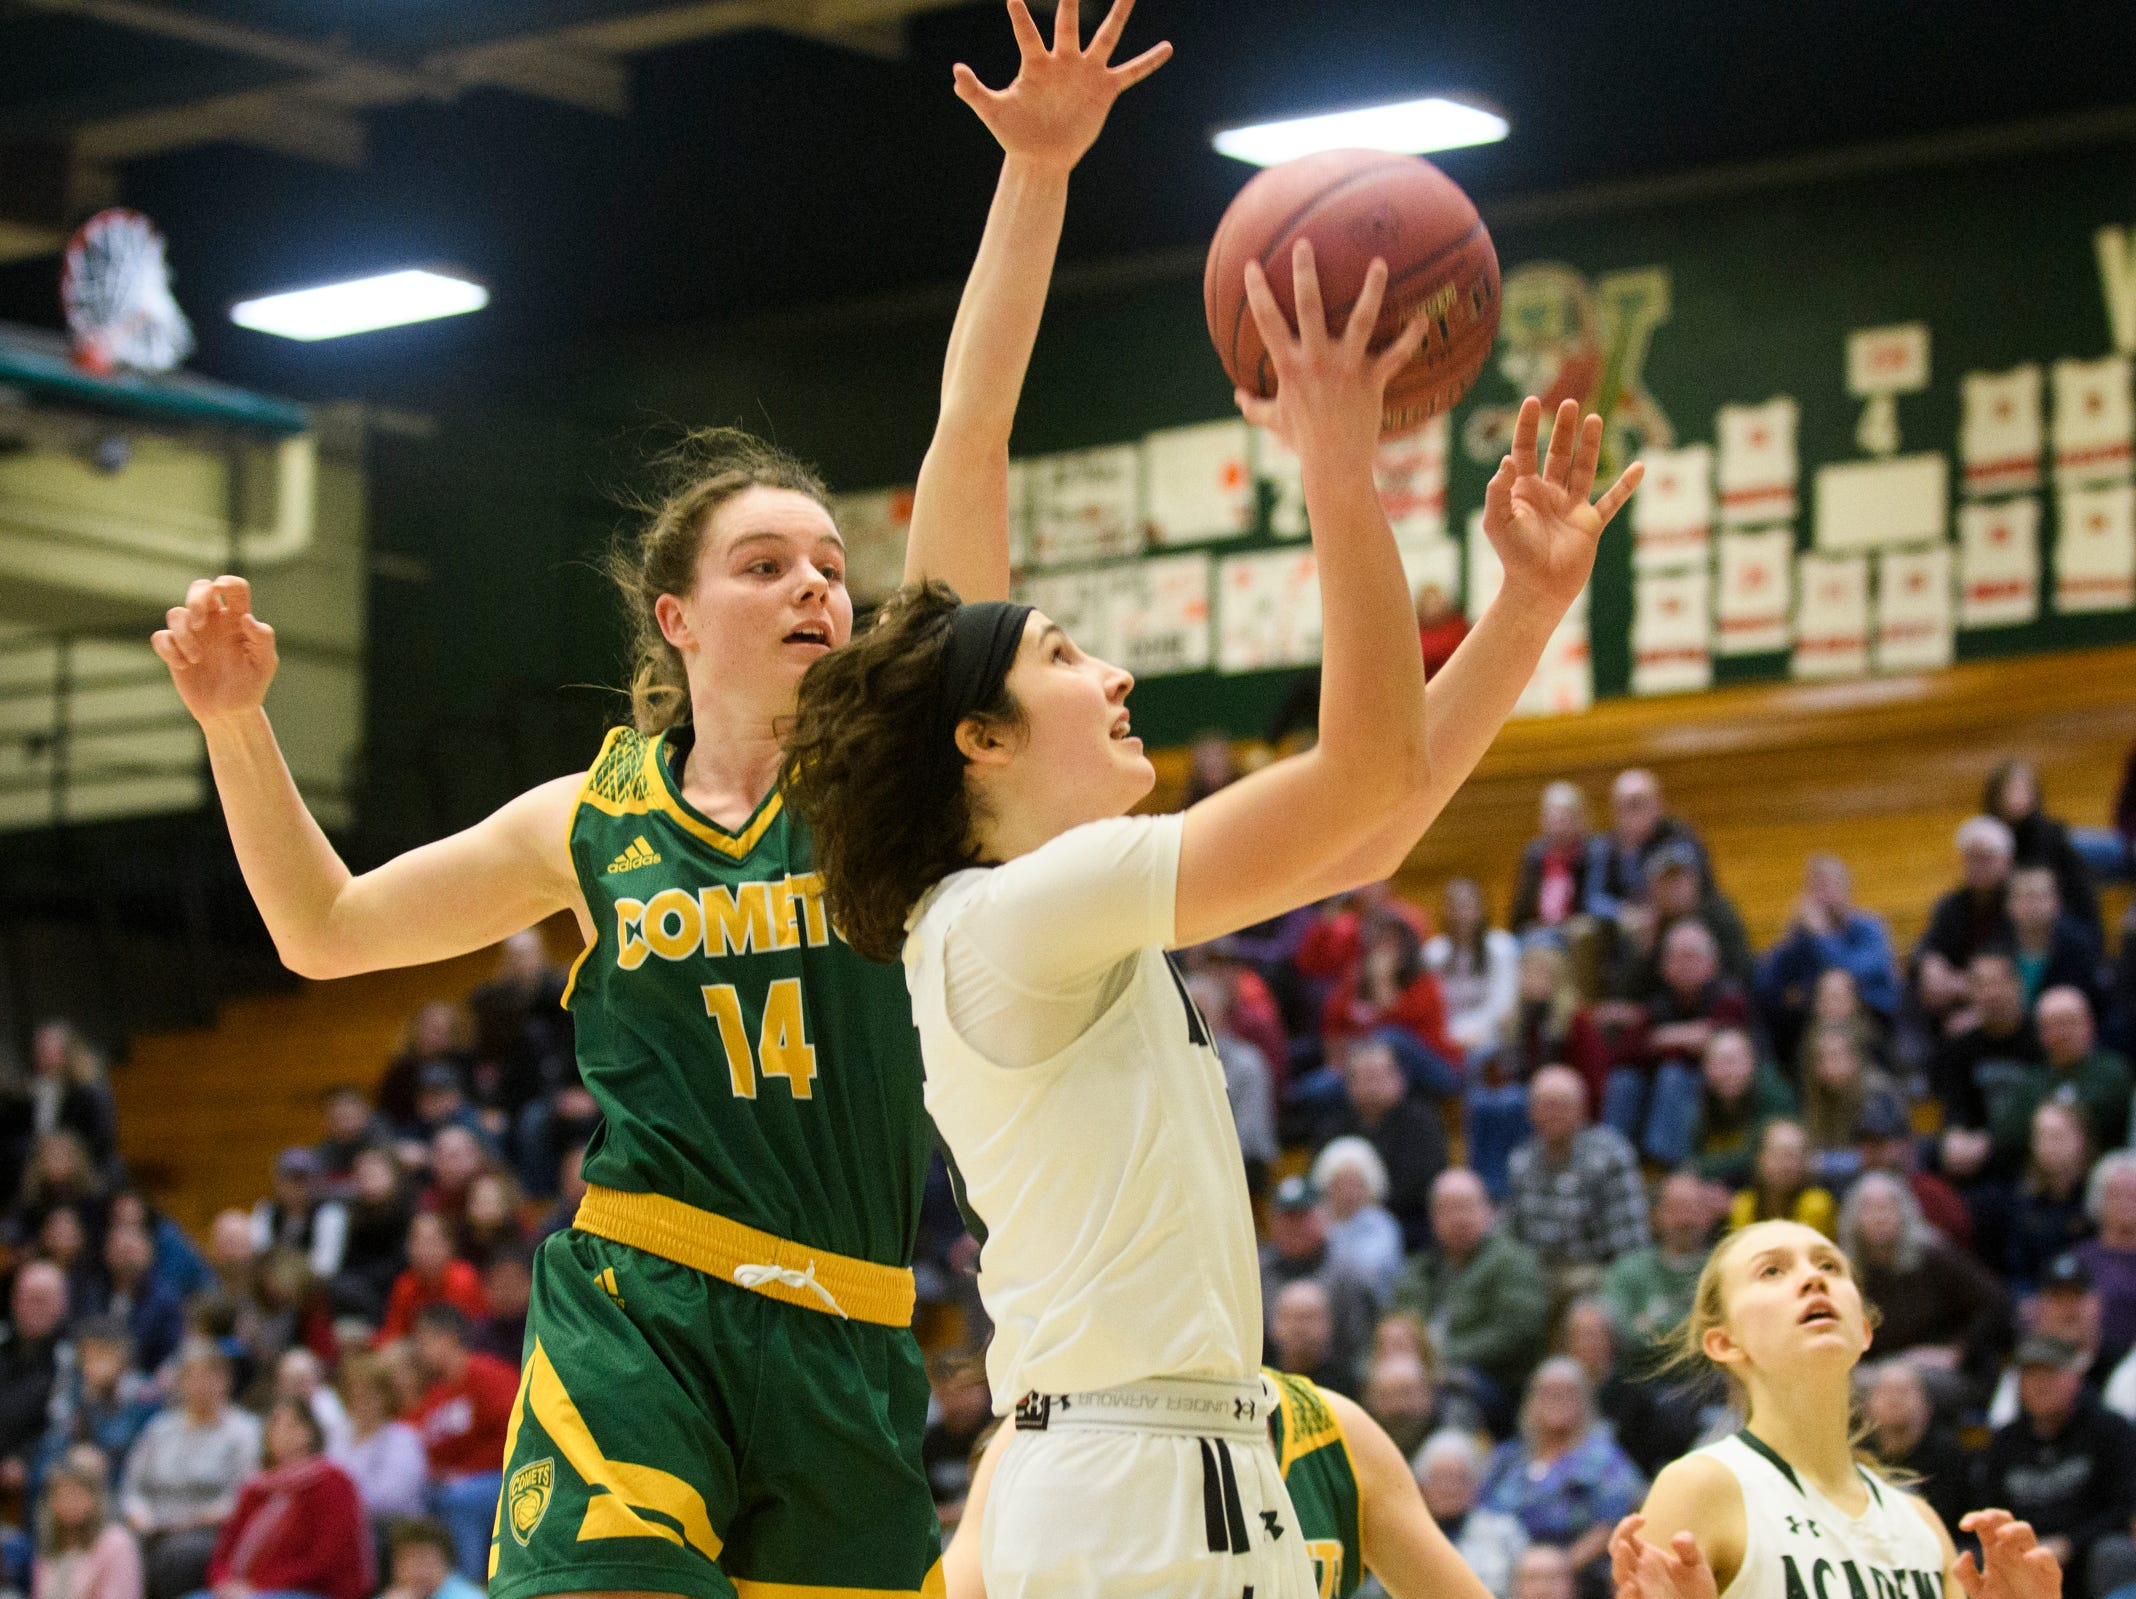 St. Johnsbury's Sadie Stetson (5) leaps for a lay up past BFA's Caitlyn Dasaro (14) during the girls semifinal basketball game between the BFA St. Albans Comets and the St. Johnsbury Hilltoppers at Patrick Gym on Wednesday night March 6, 2019 in Burlington, Vermont.